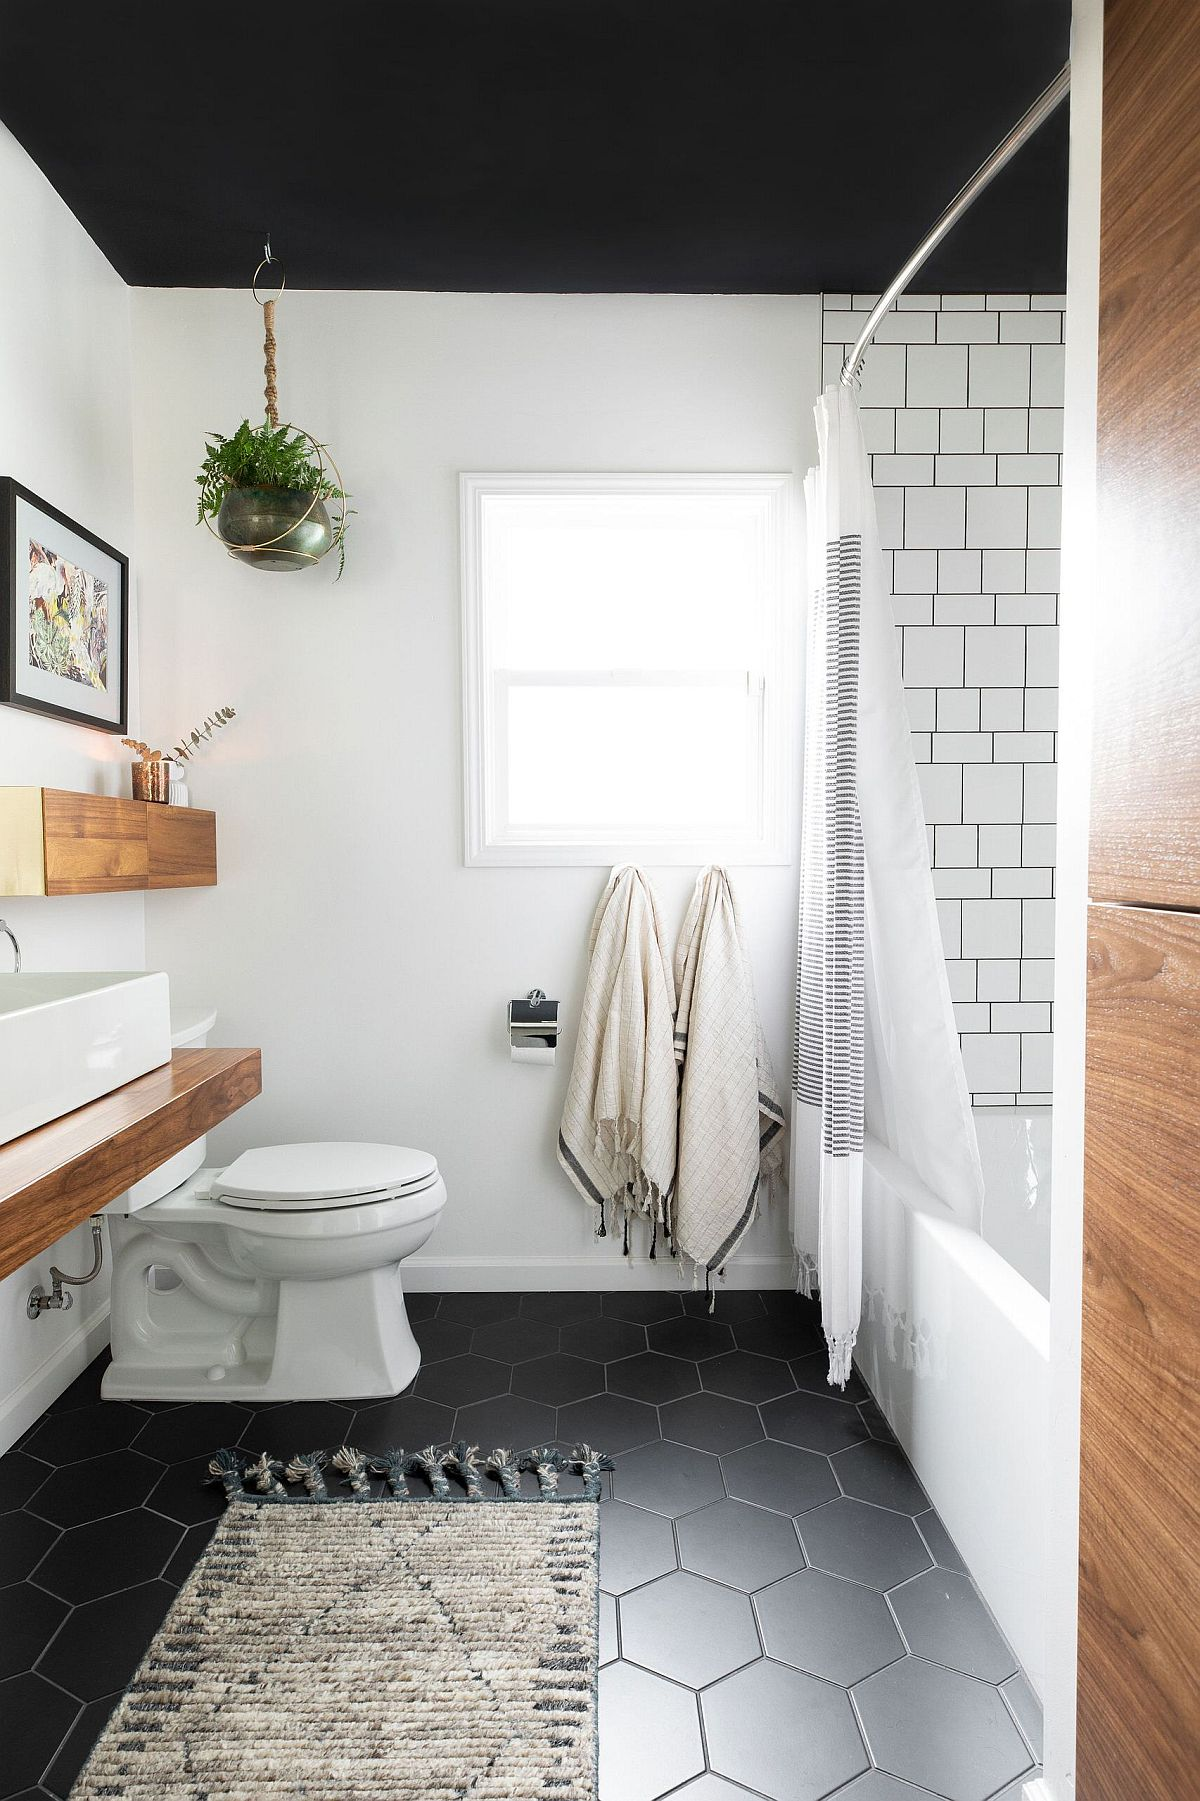 Modern bathroom in black and white with wooden accents and vanity has a floor with hexagonal tiles